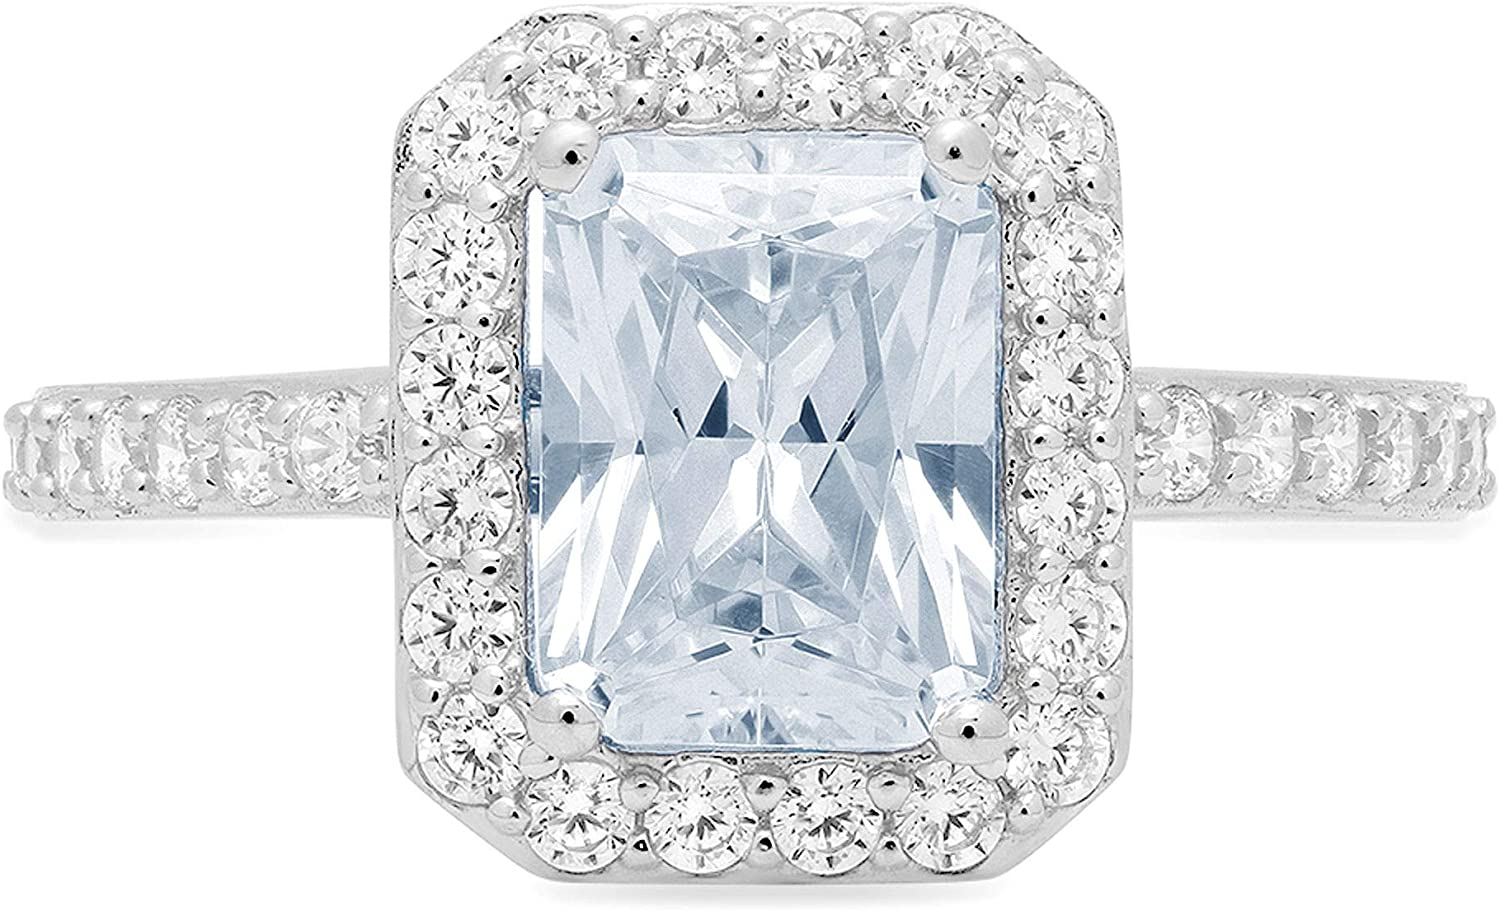 2.07ct Brilliant Emerald Cut Solitaire with Accent Halo Flawless Designer Genuine Natural Light Blue Aquamarine Gemstone Ideal VVS1 Engagement Promise Anniversary Bridal Wedding Ring 14k White Gold